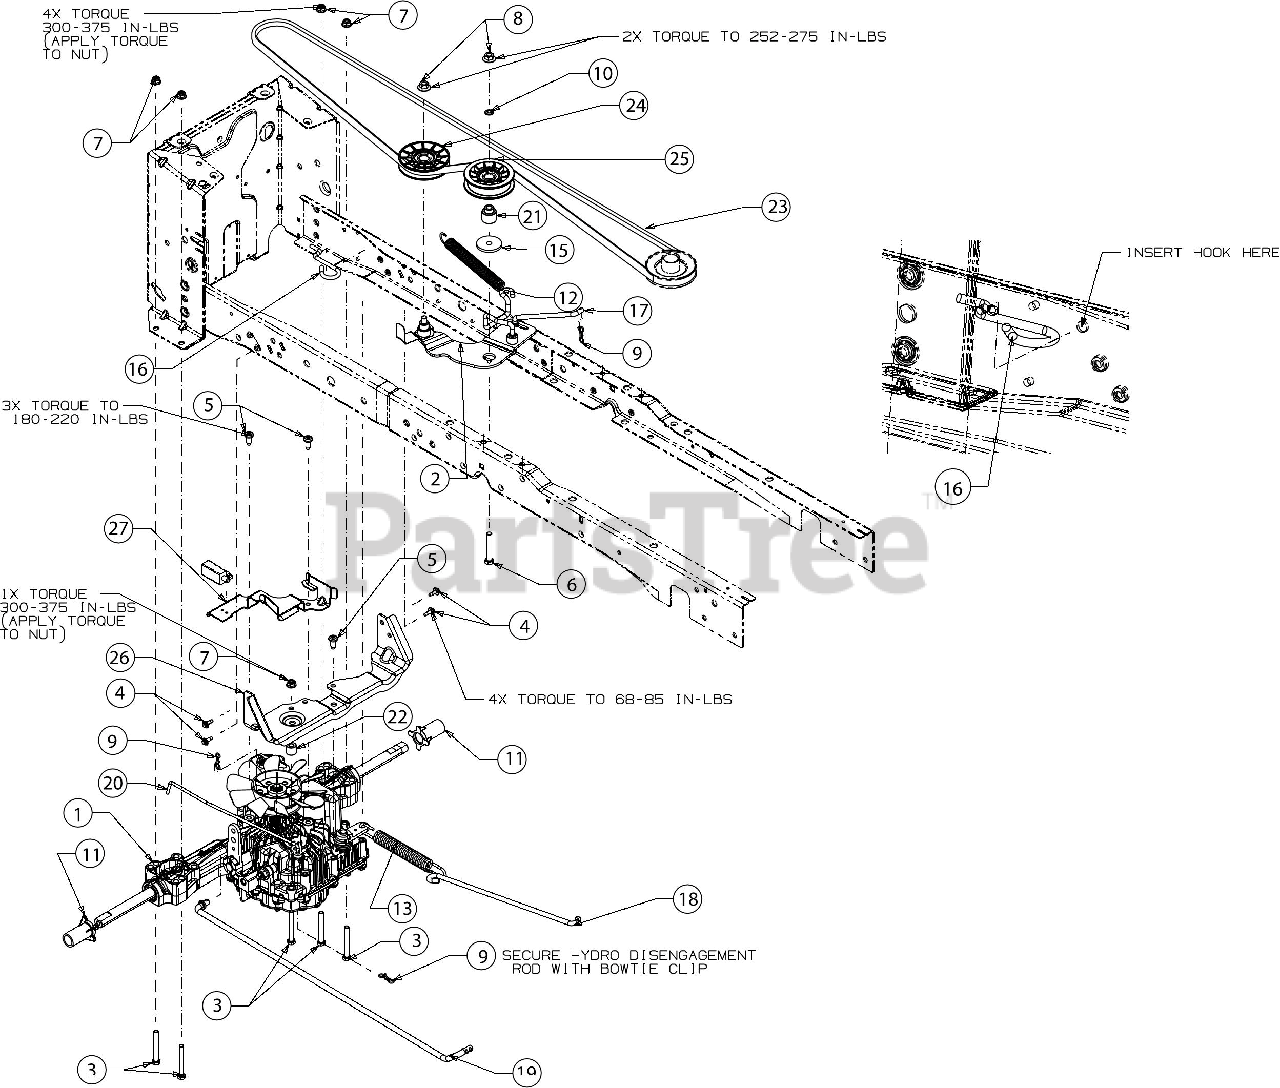 [DIAGRAM] Farmall Cub Transmission Parts Diagram FULL